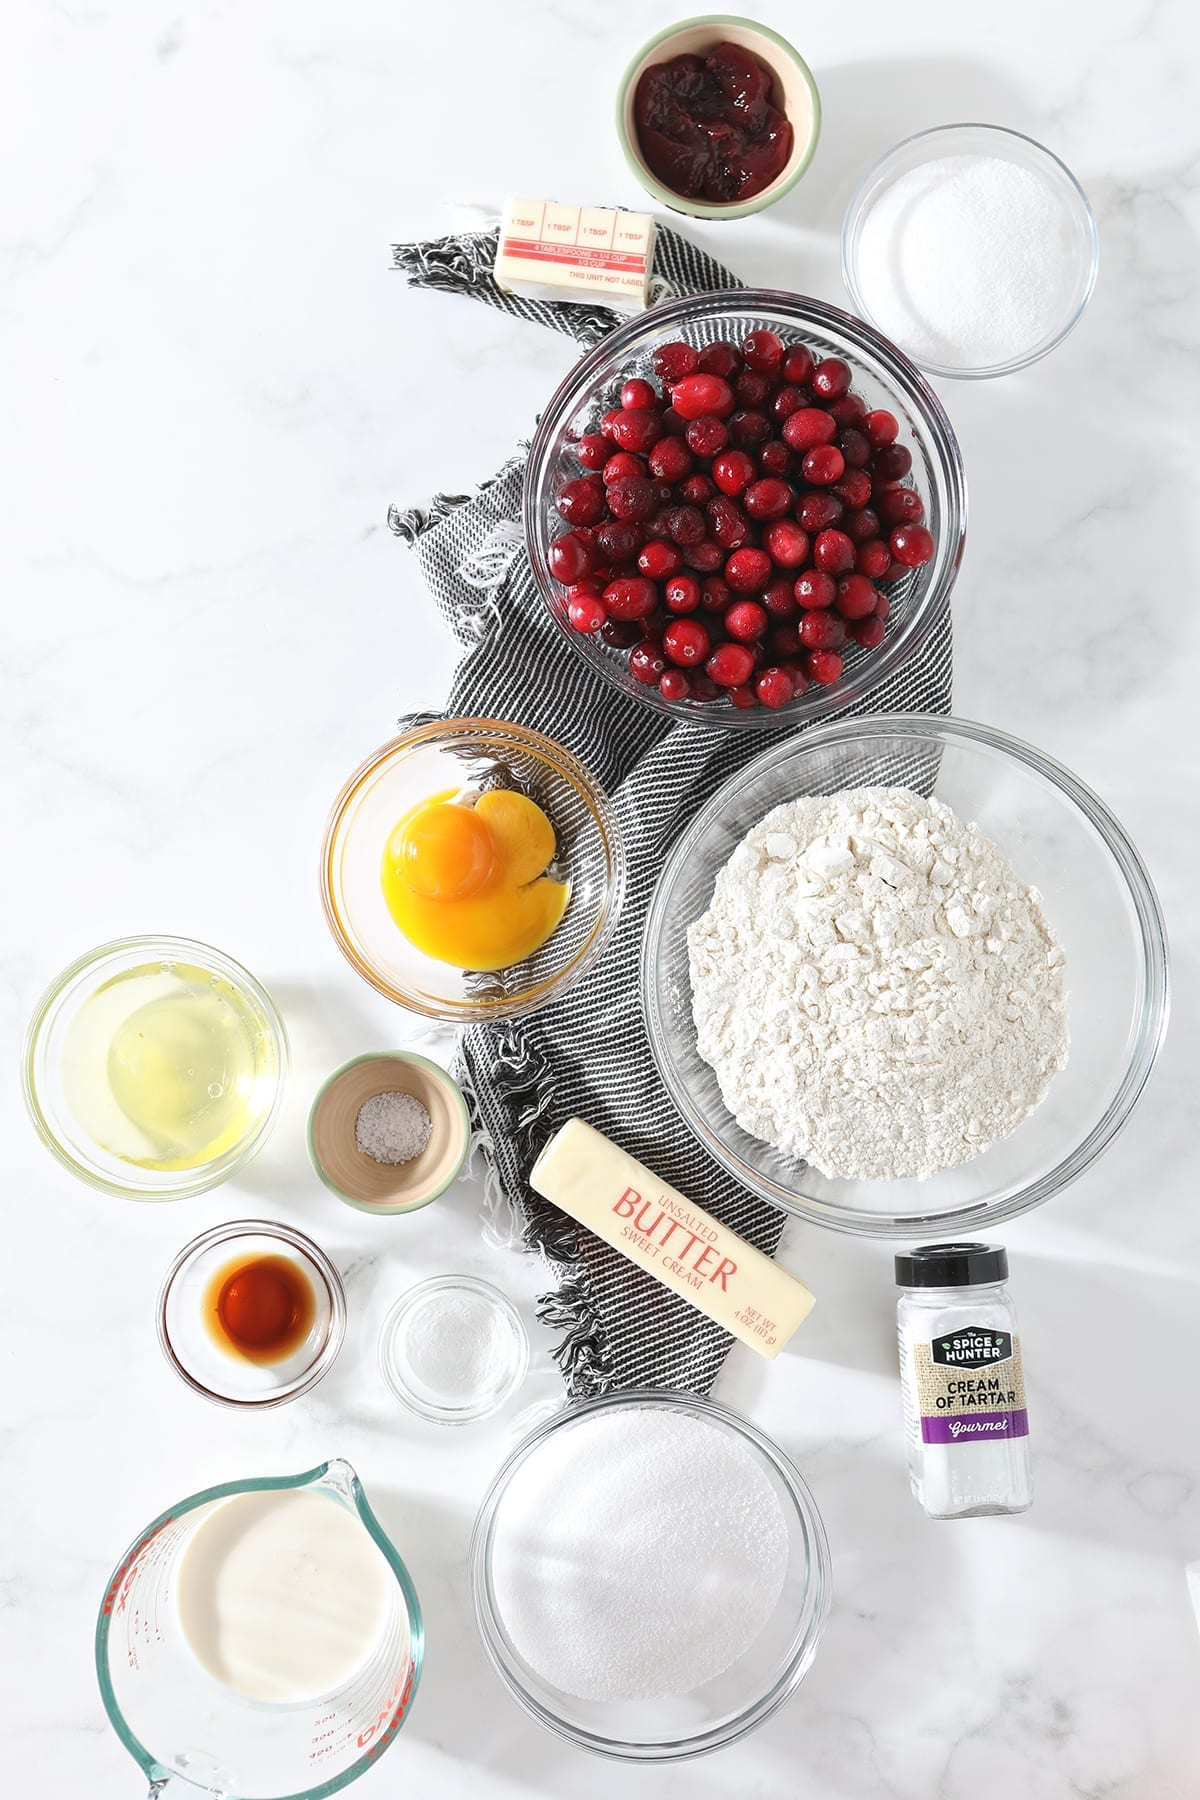 Ingredients for the Cranberry Cake, shown from above in bowls, on a gray striped towel and marble counter